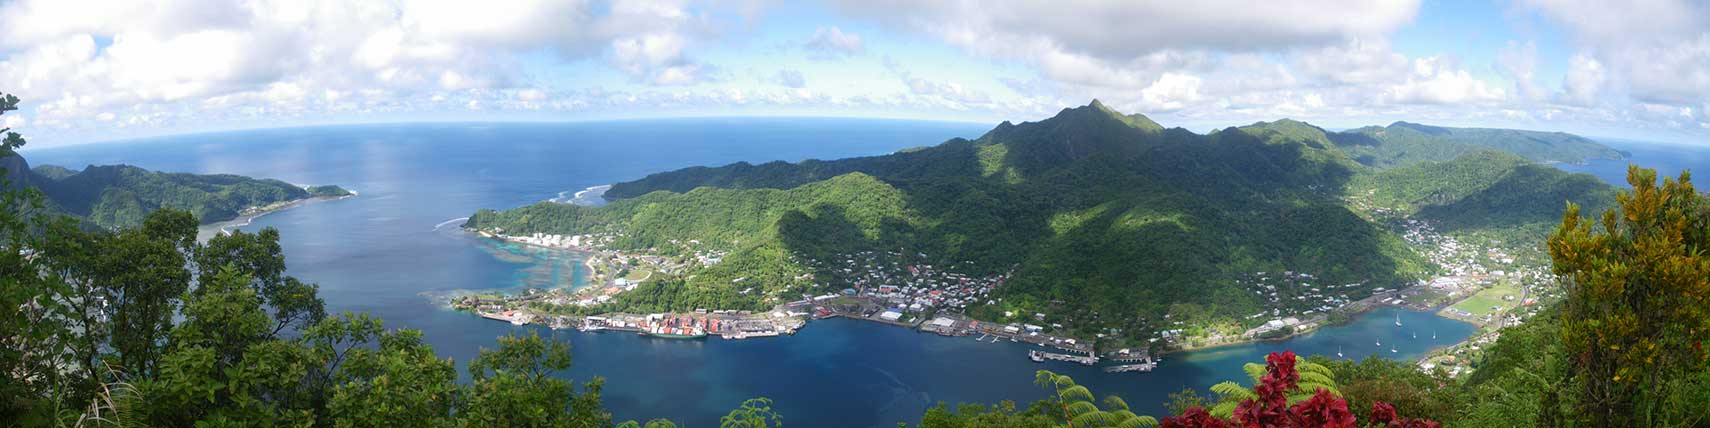 ___ satellite view of pago pago american samoa